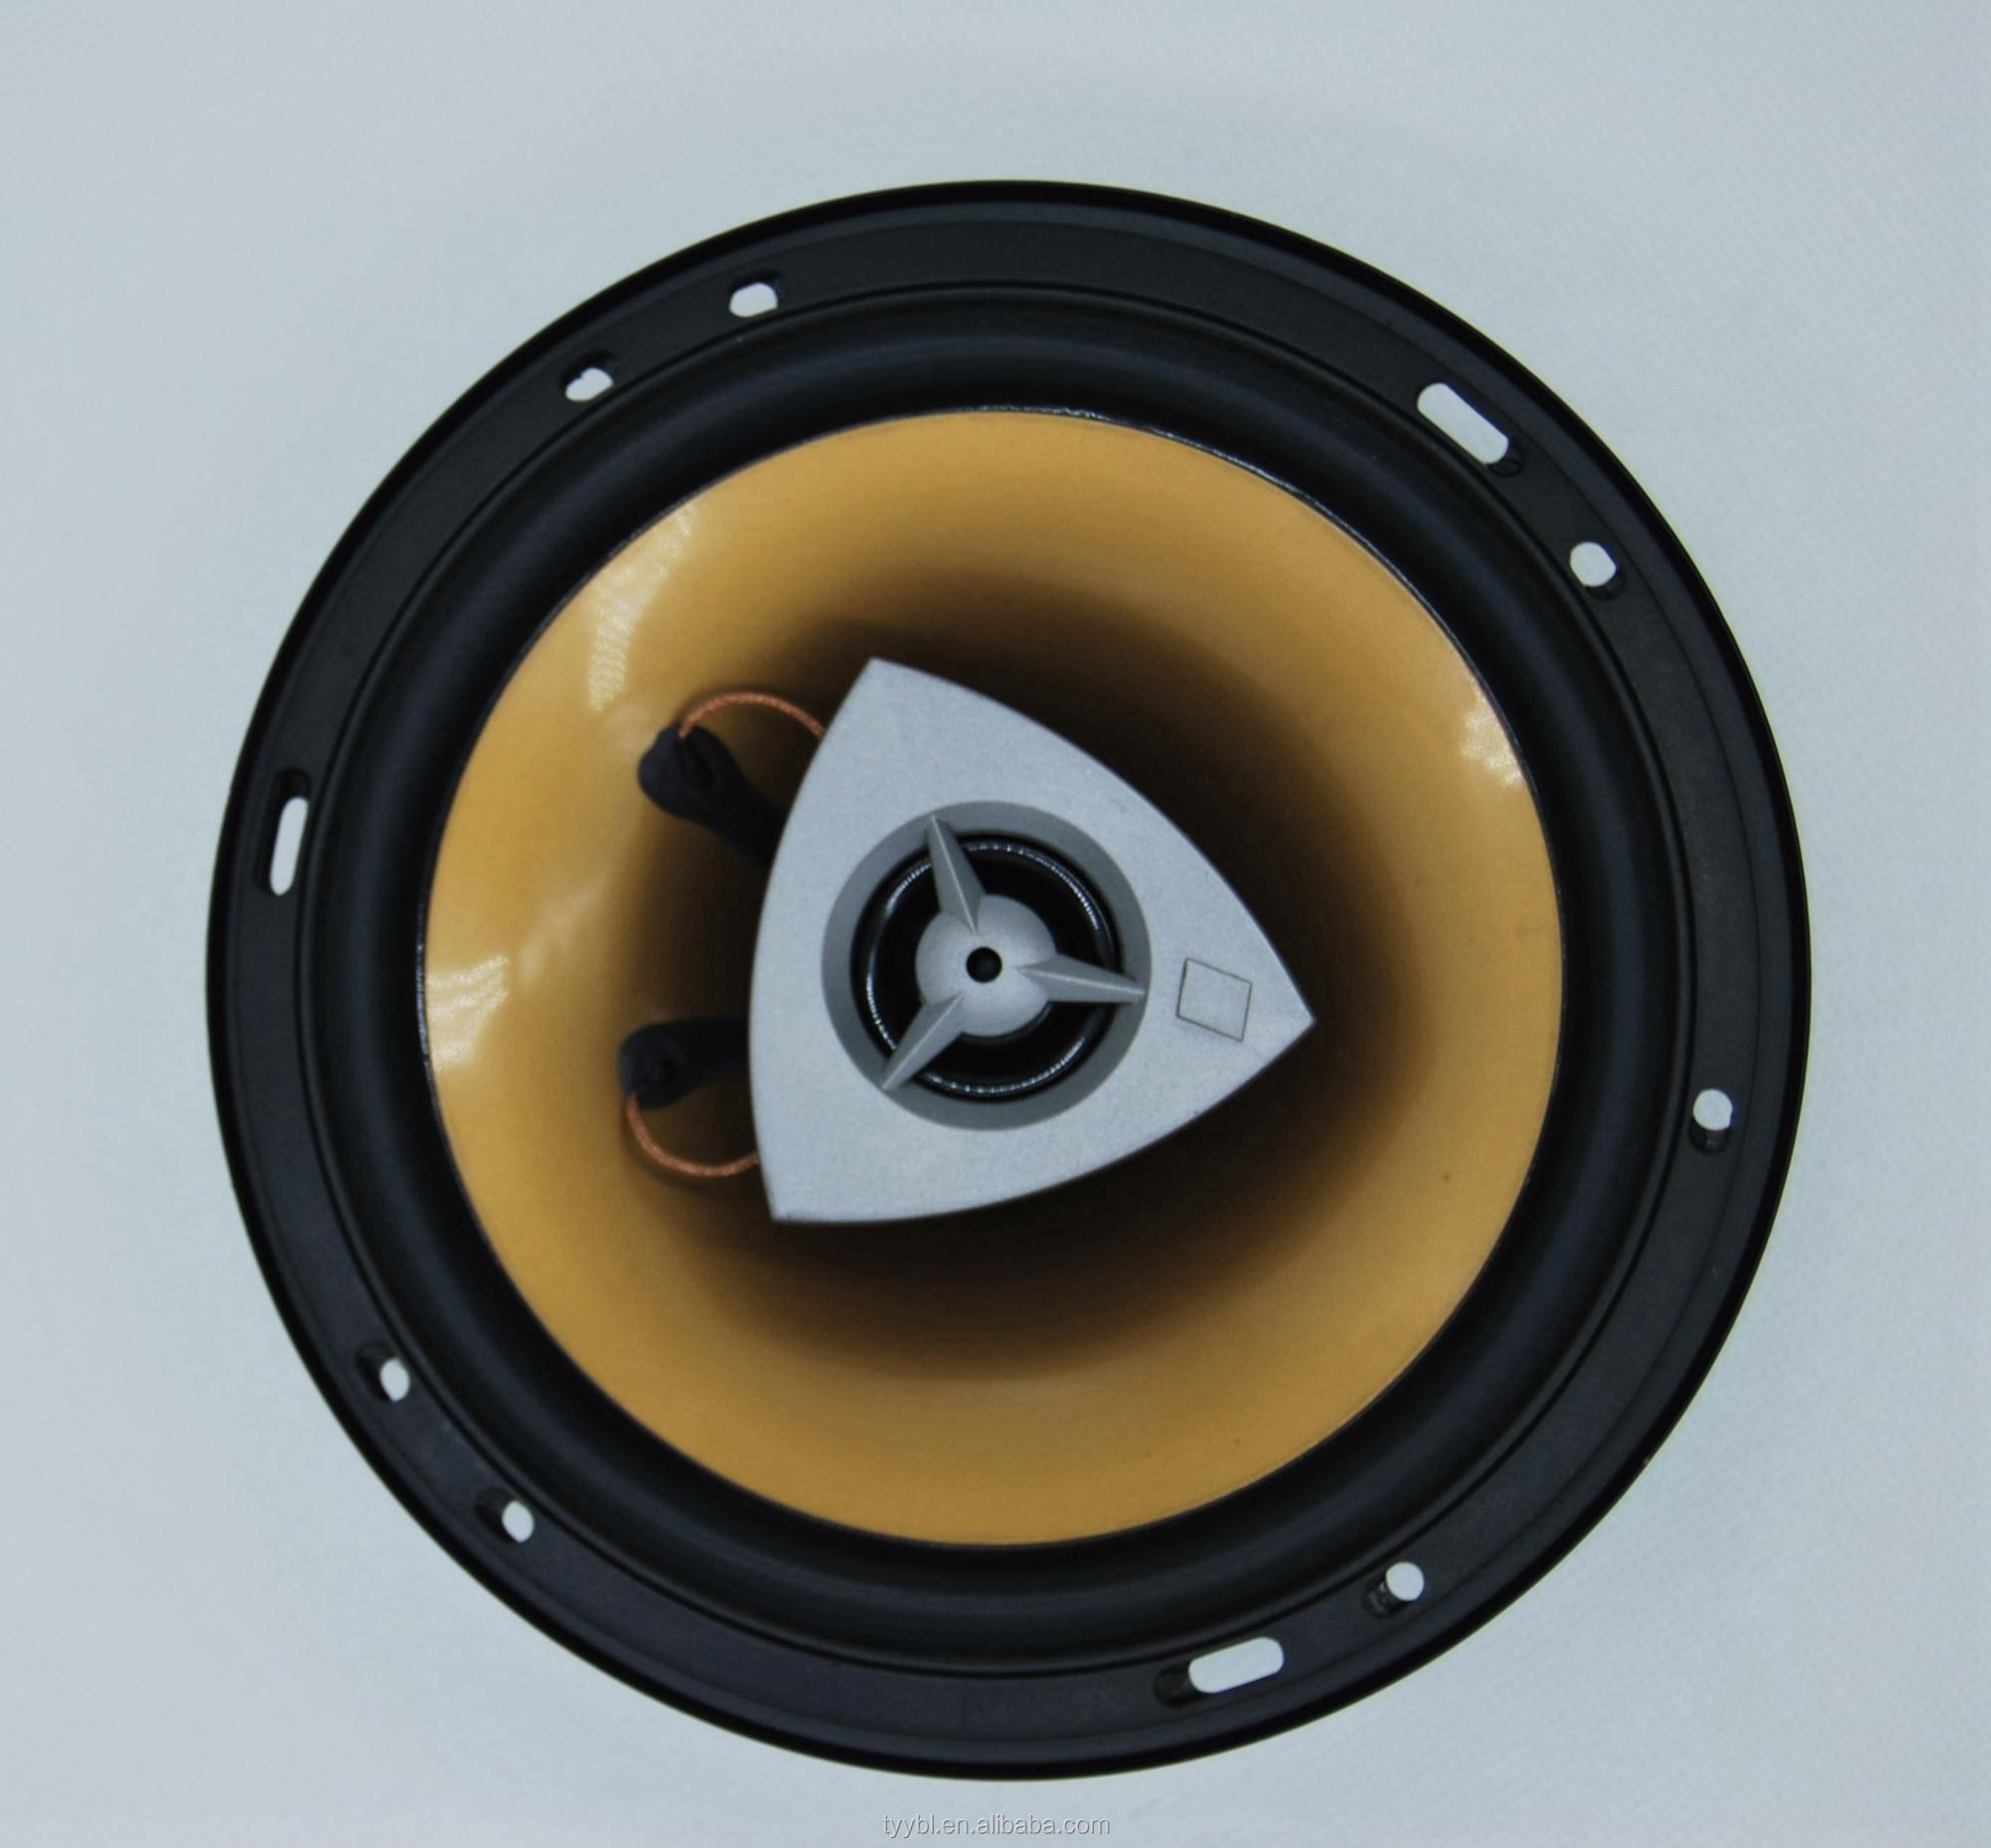 6 Inch The Best Loud Horn For Car Speakers Of Auto Stereo